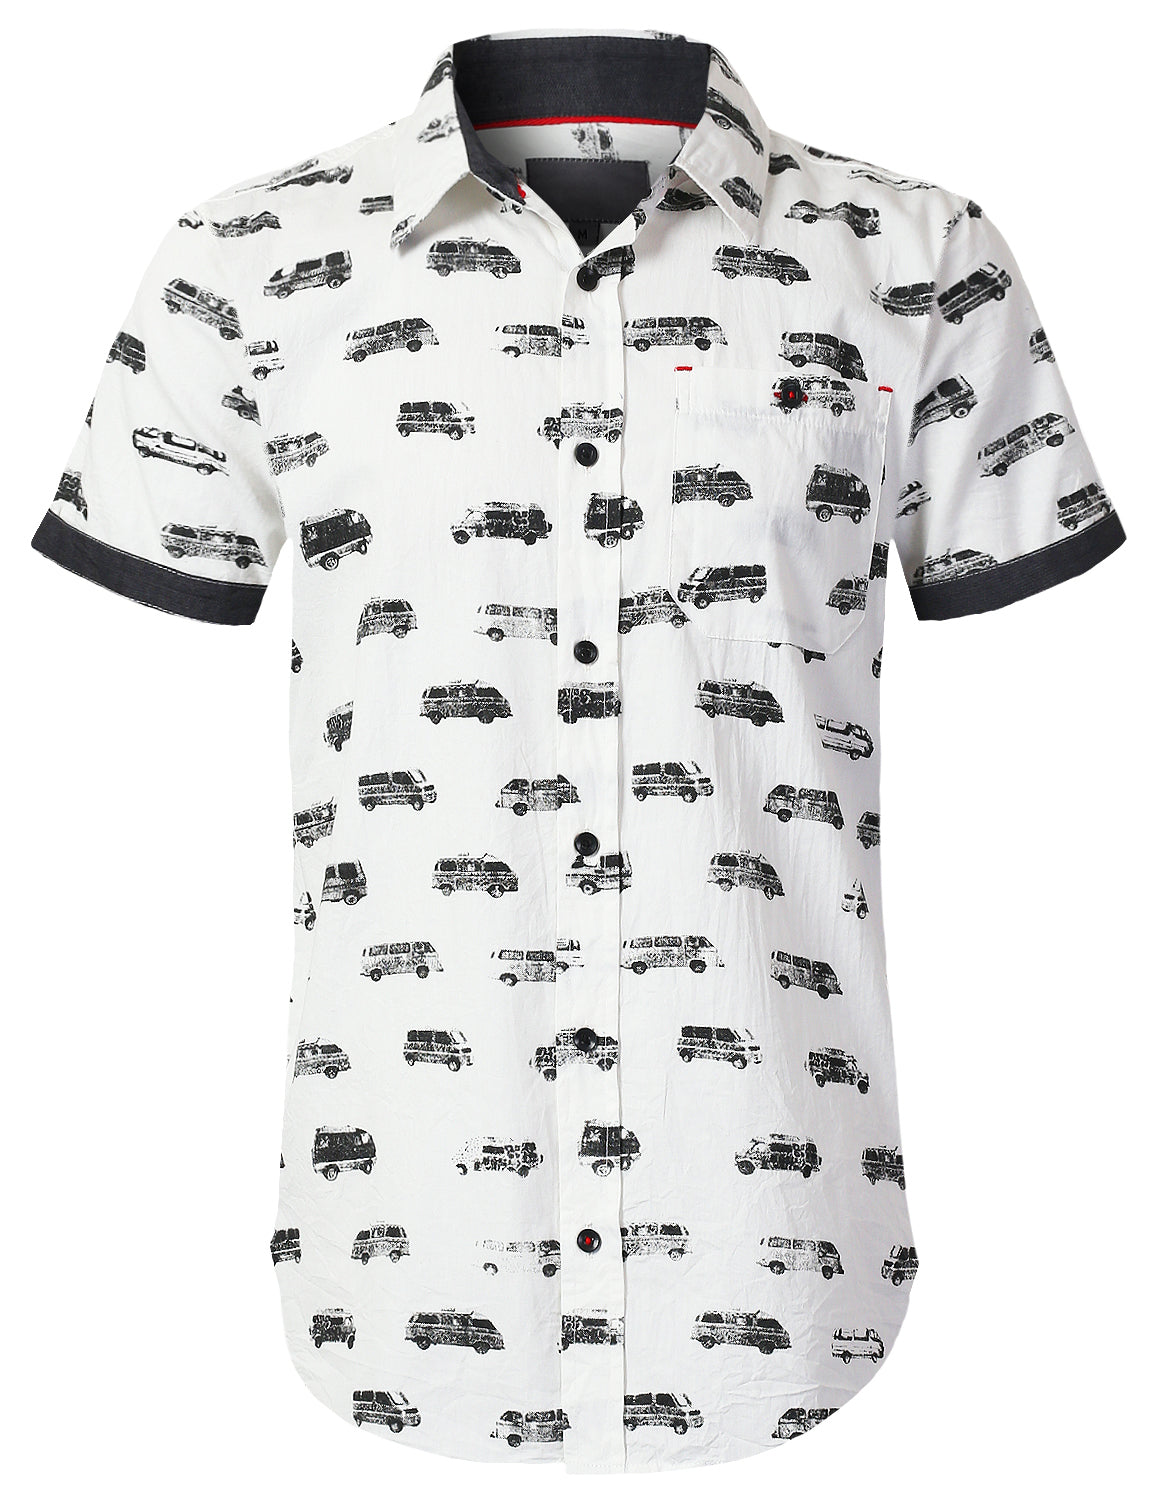 WHITEBLACK Graphic Printed Button Down Shirt - URBANCREWS